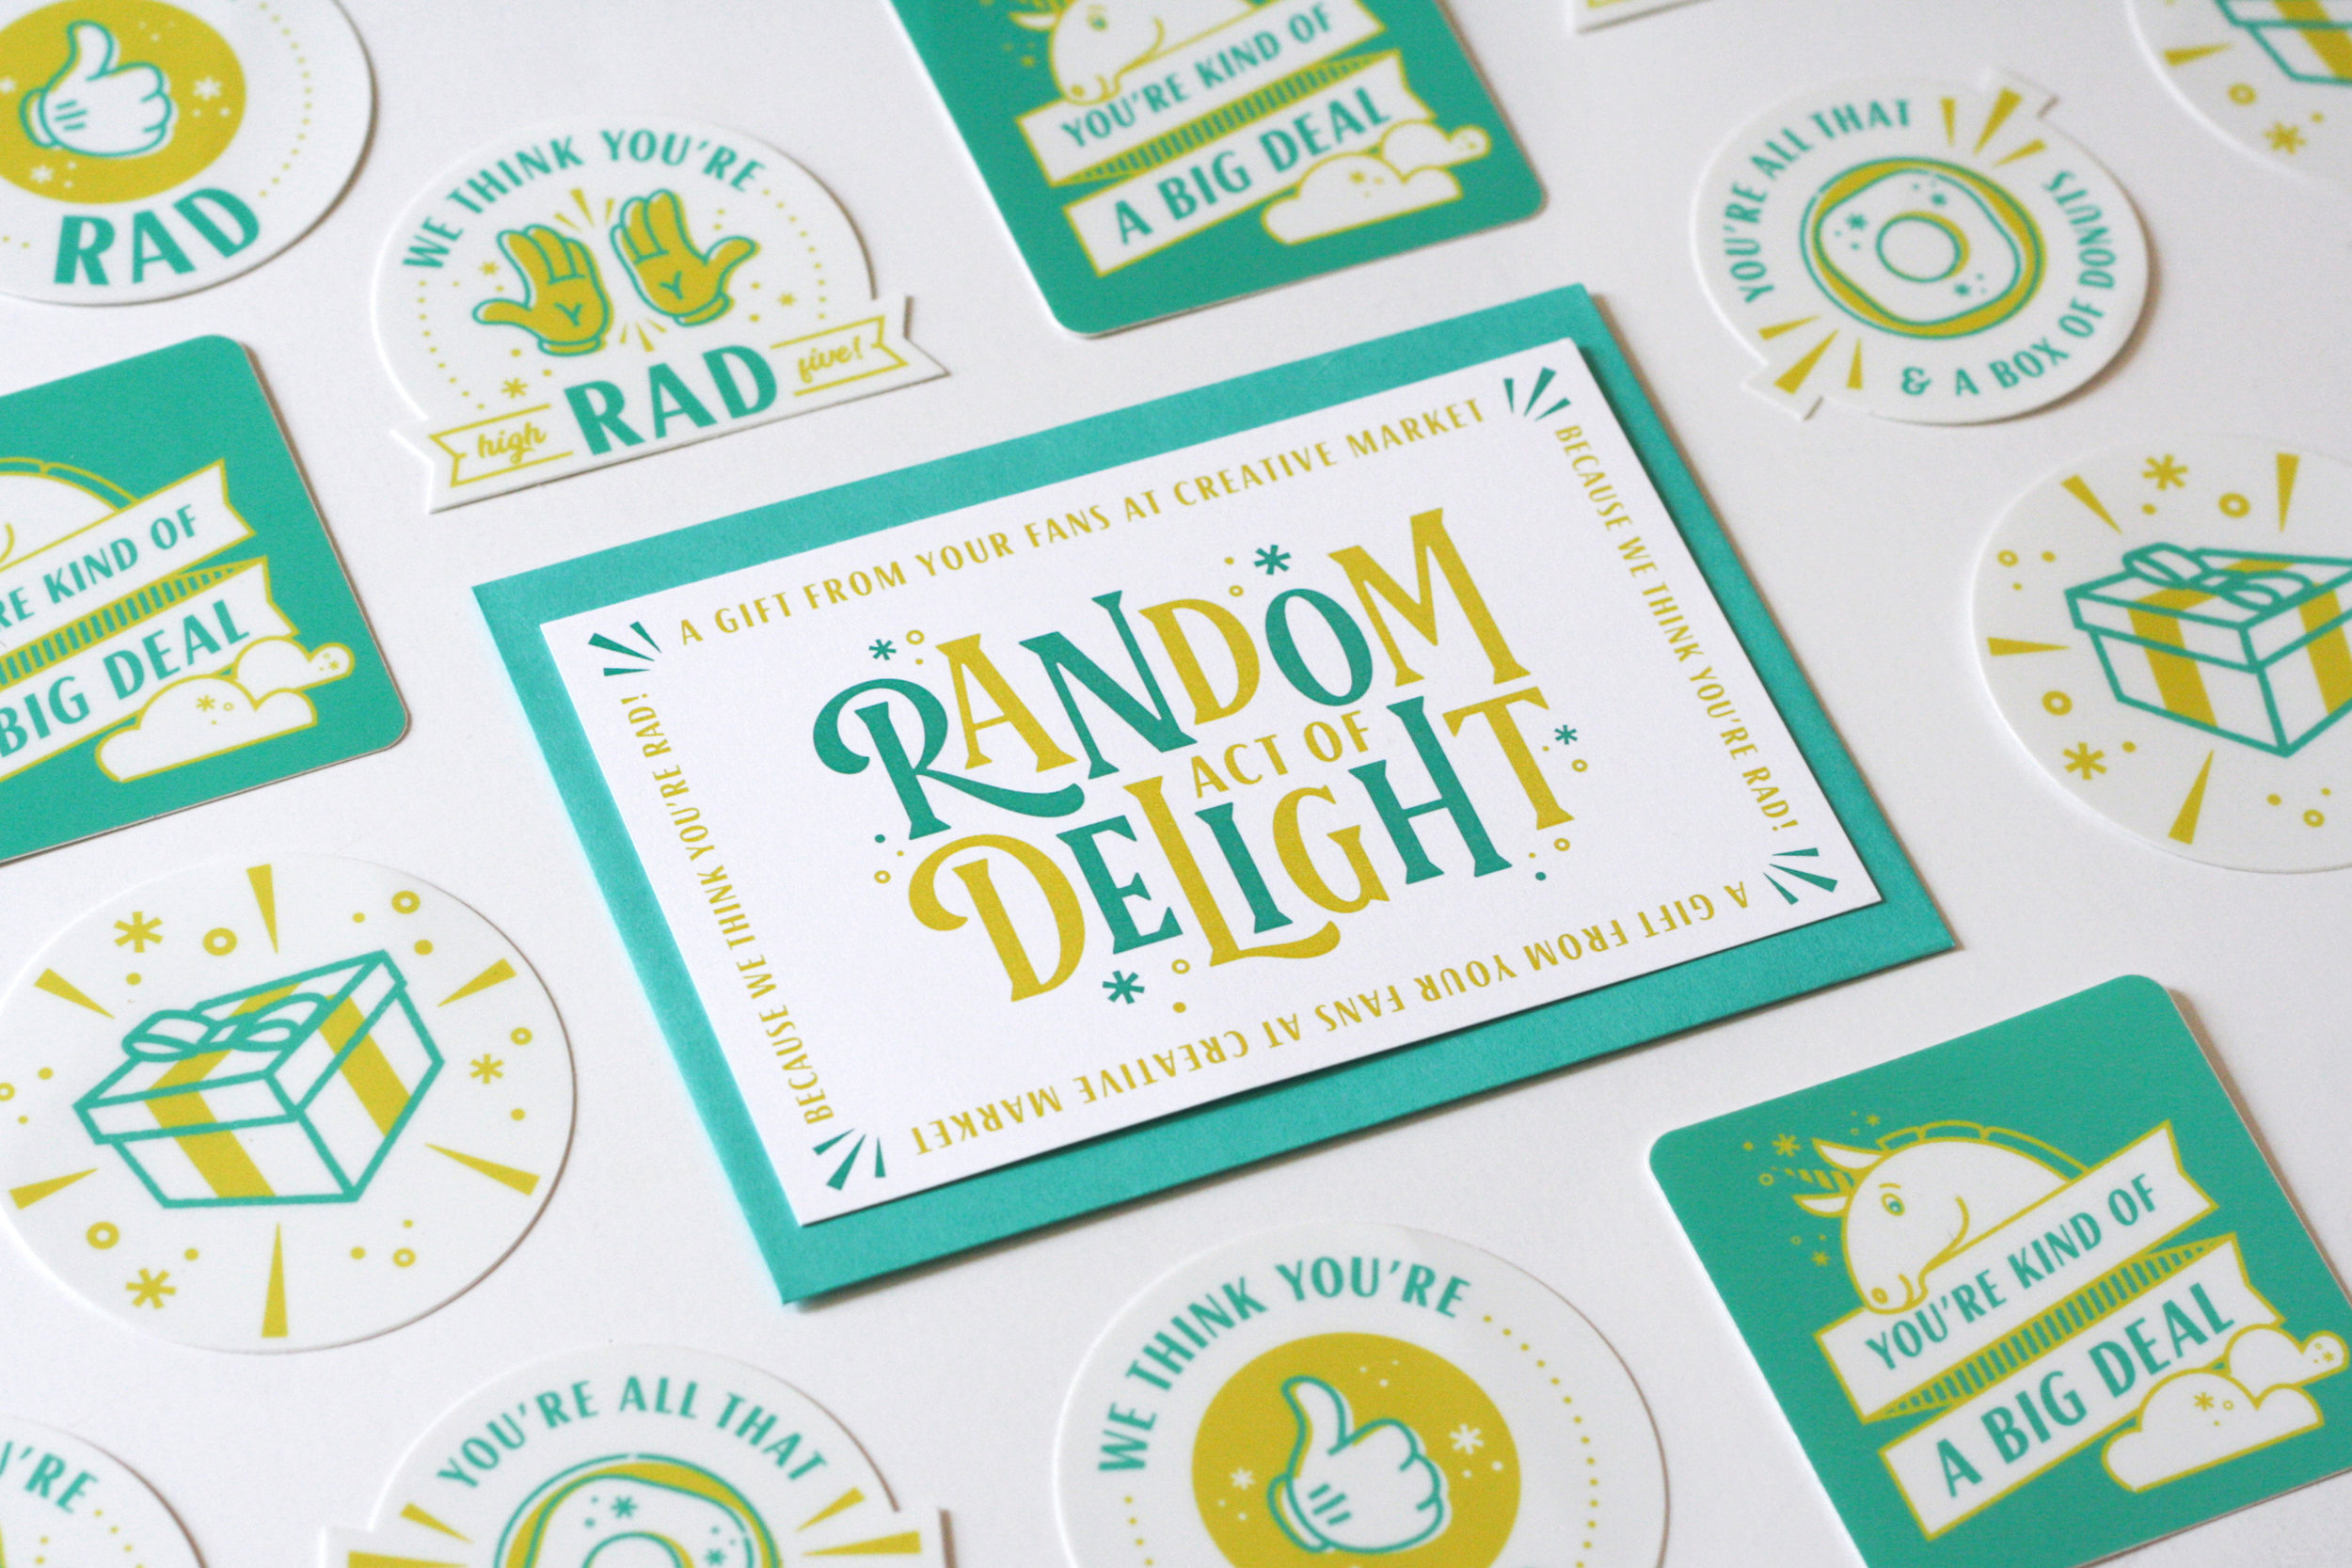 RAD-card-stickers-web.jpg